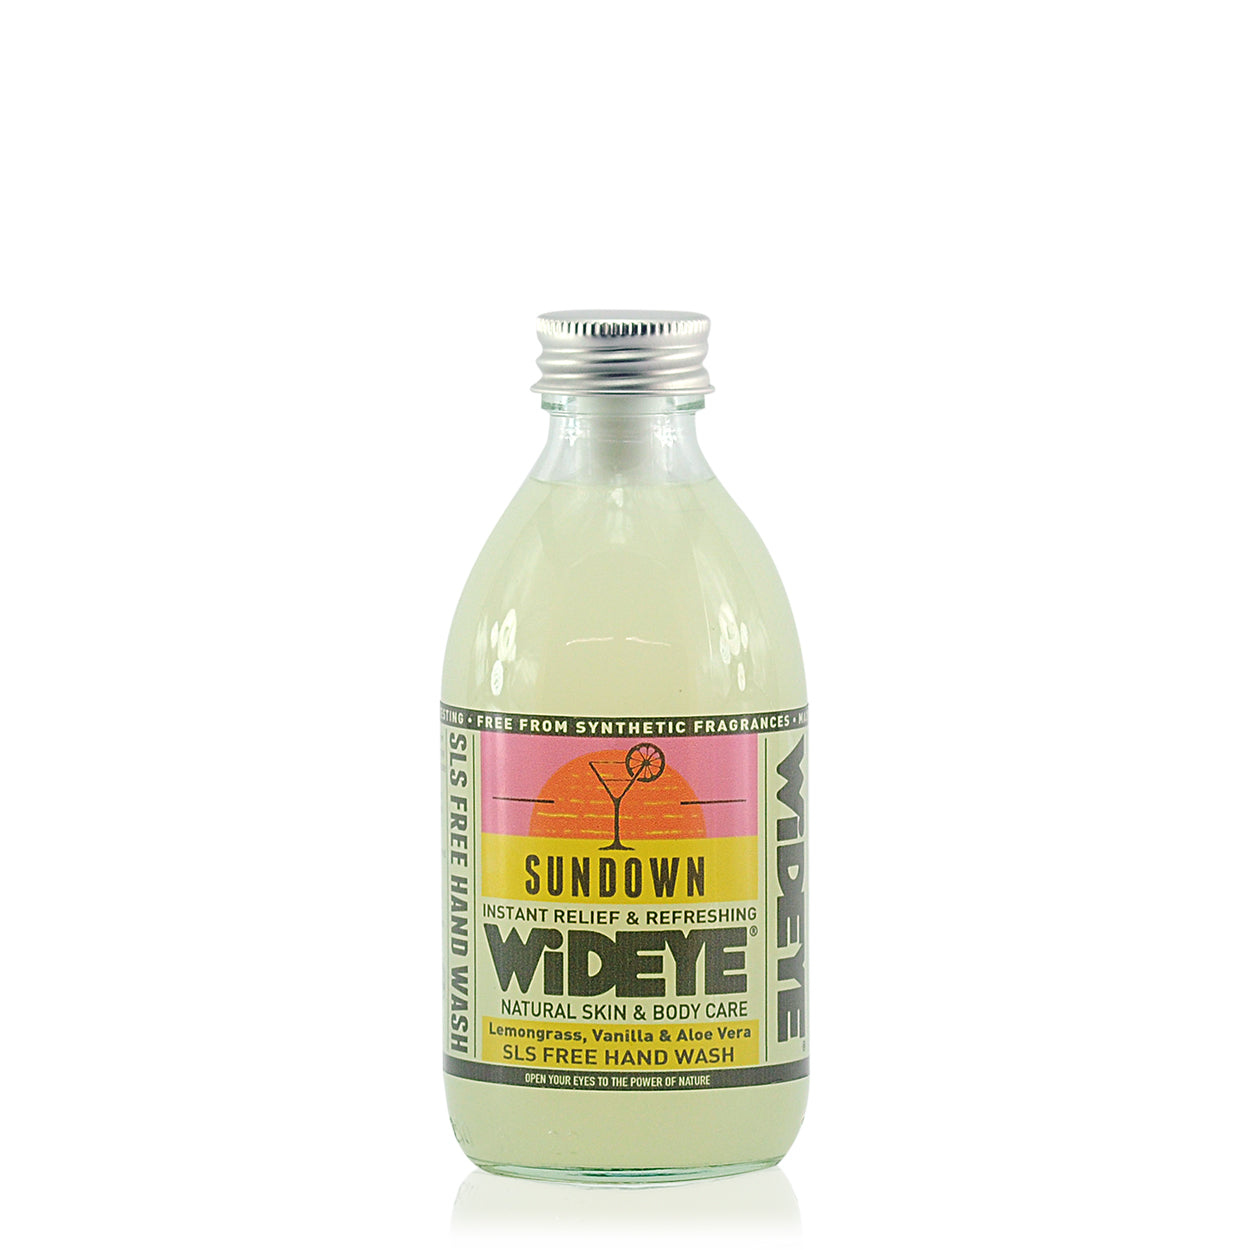 Sundown hand wash. Clear hand wash in a clear glass bottle, with a pink and yellow label and an aluminium top.